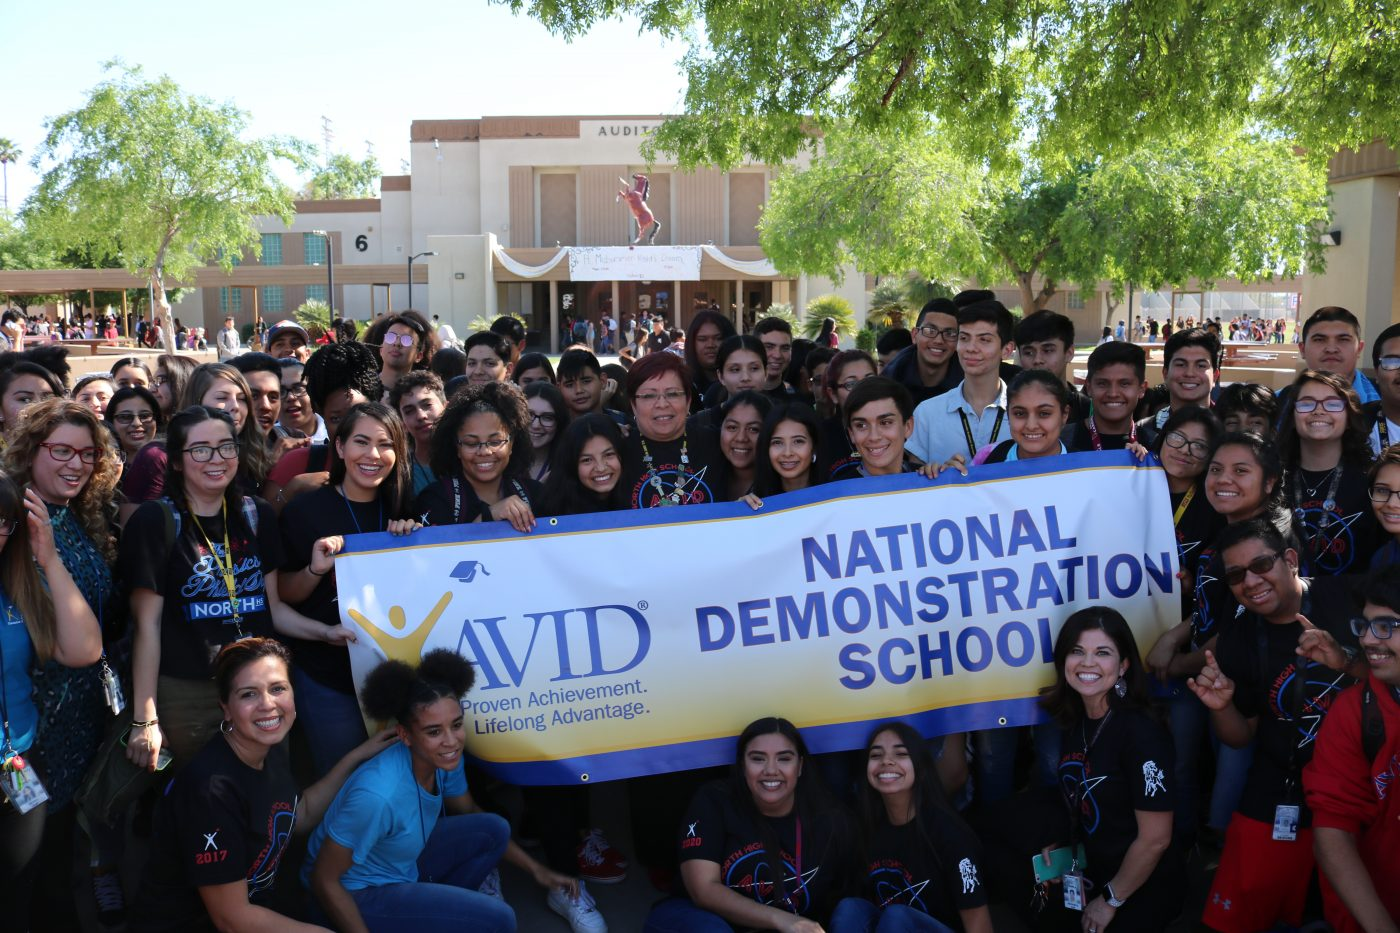 North High School In Phoenix Becomes AVID Demonstration School